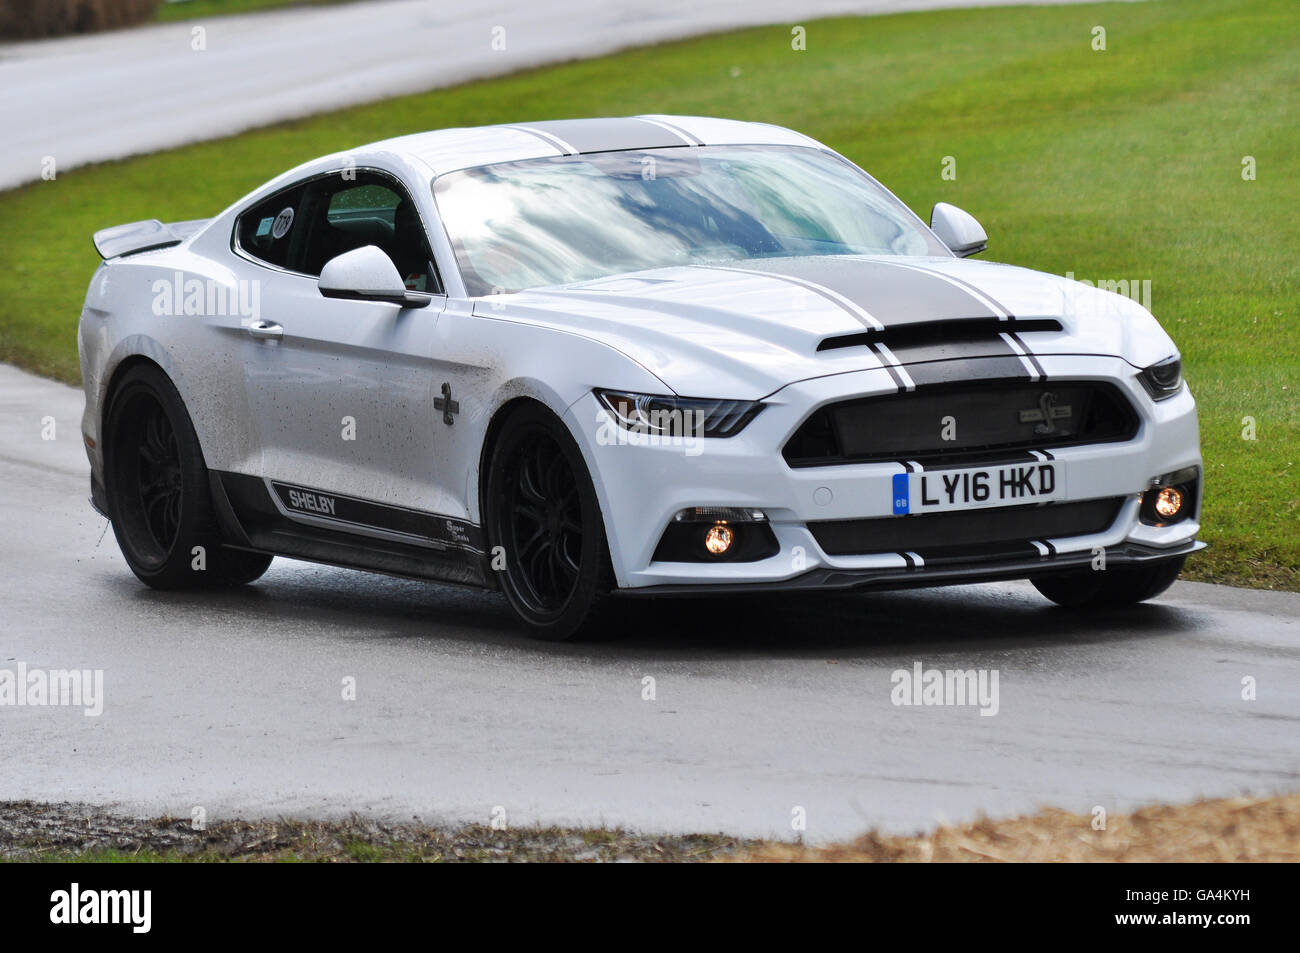 Shelby Mustang Super Snake At The Goodwood Festival Of Speed Ga Kyh